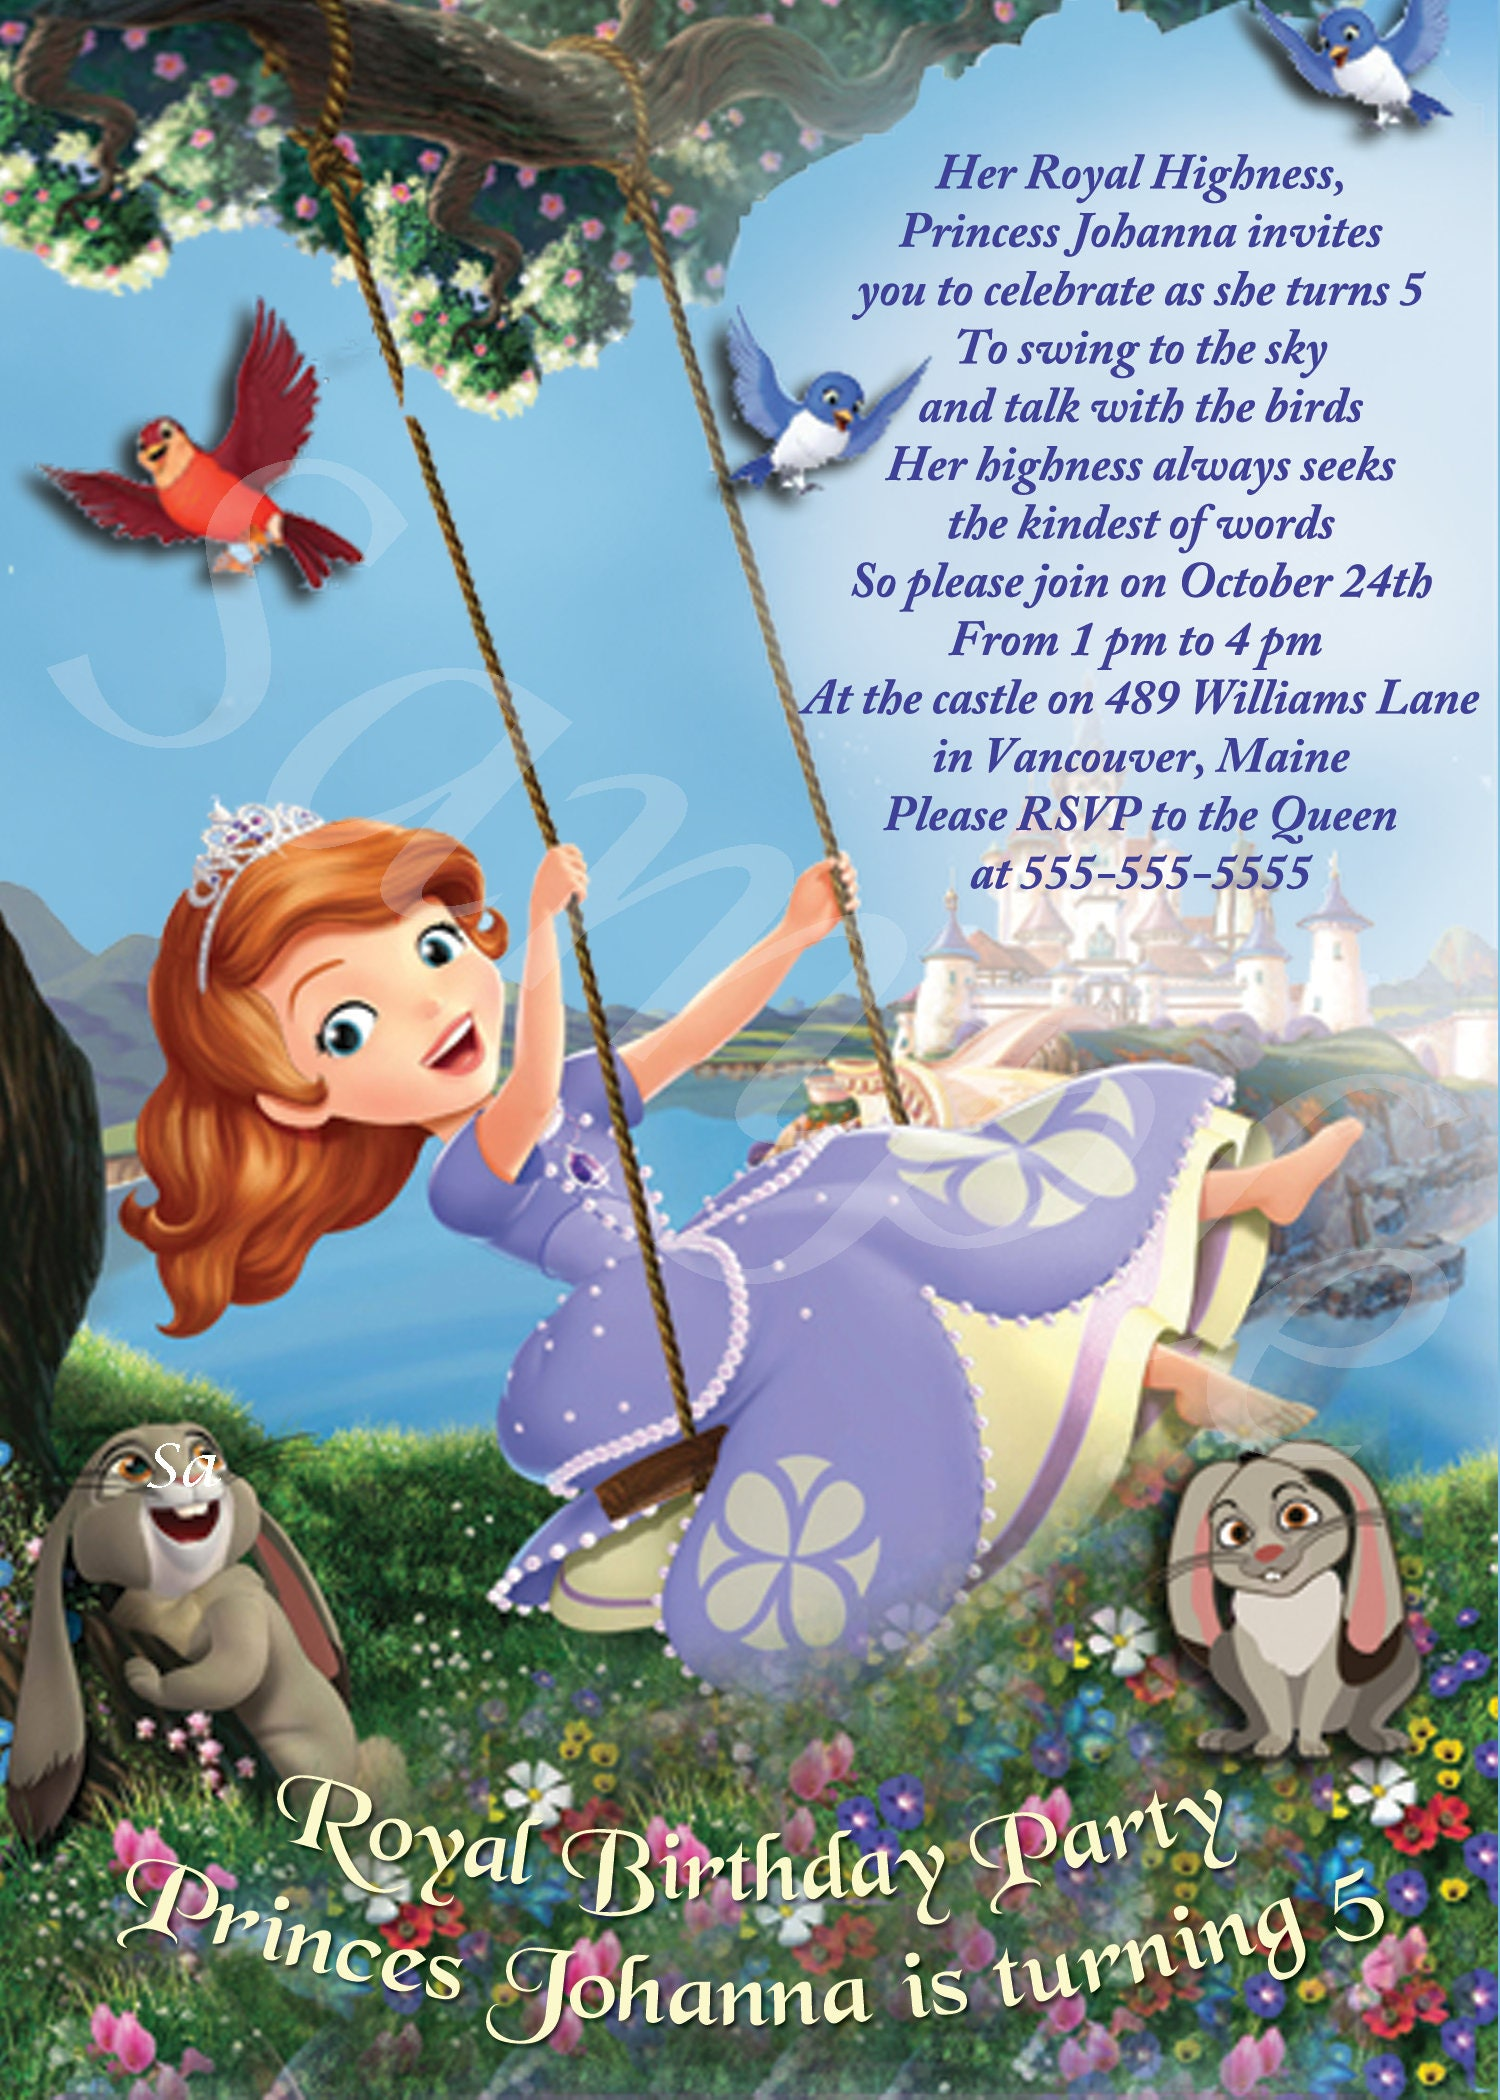 Sofia the First Birthday Party Invitation -on a swing - Custom for ...